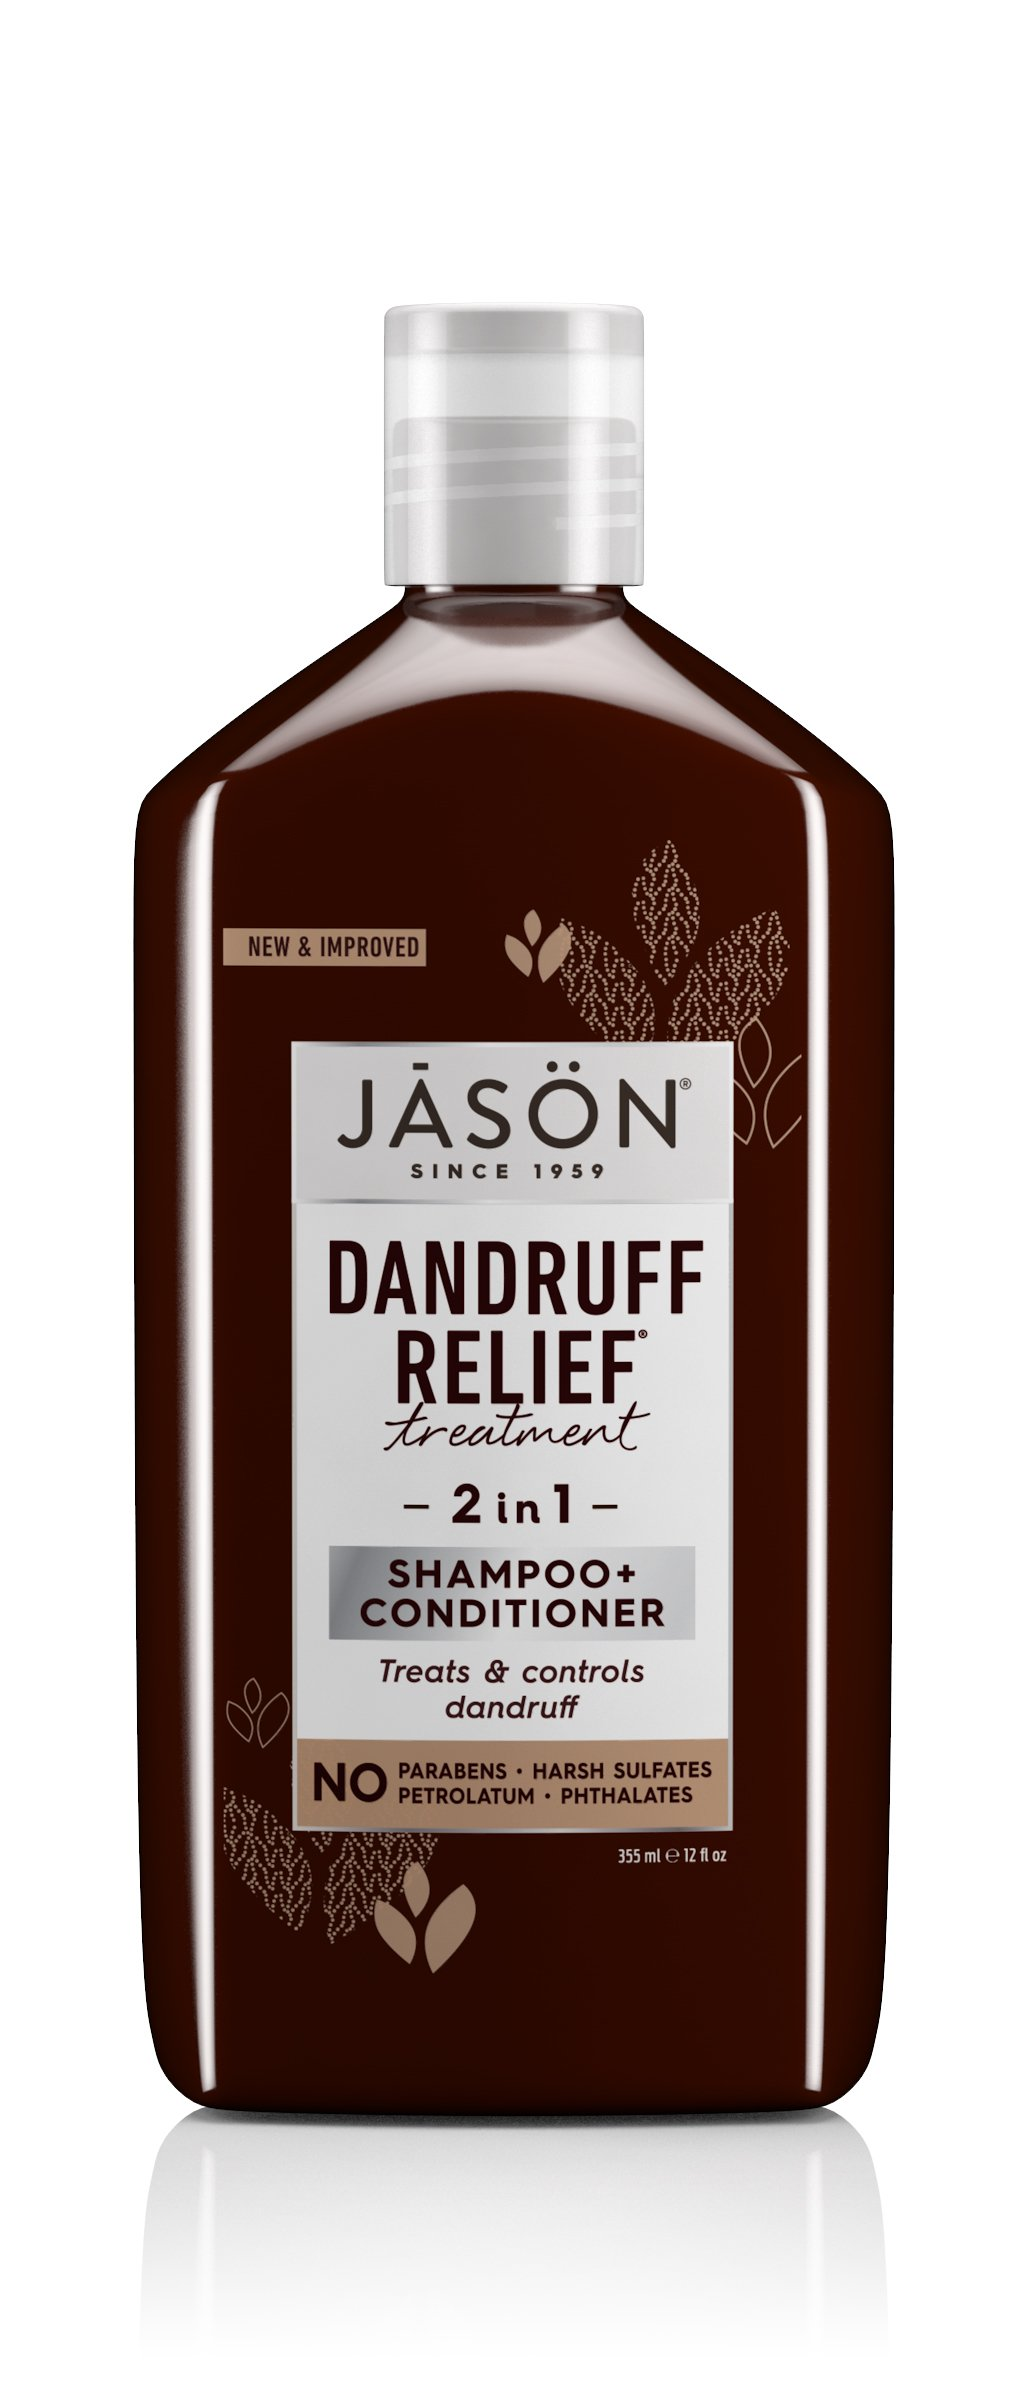 JASON Dandruff Relief 2-in-1 Treatment Shampoo and Conditioner, 12 oz. (Packaging May Vary) by JASÖN